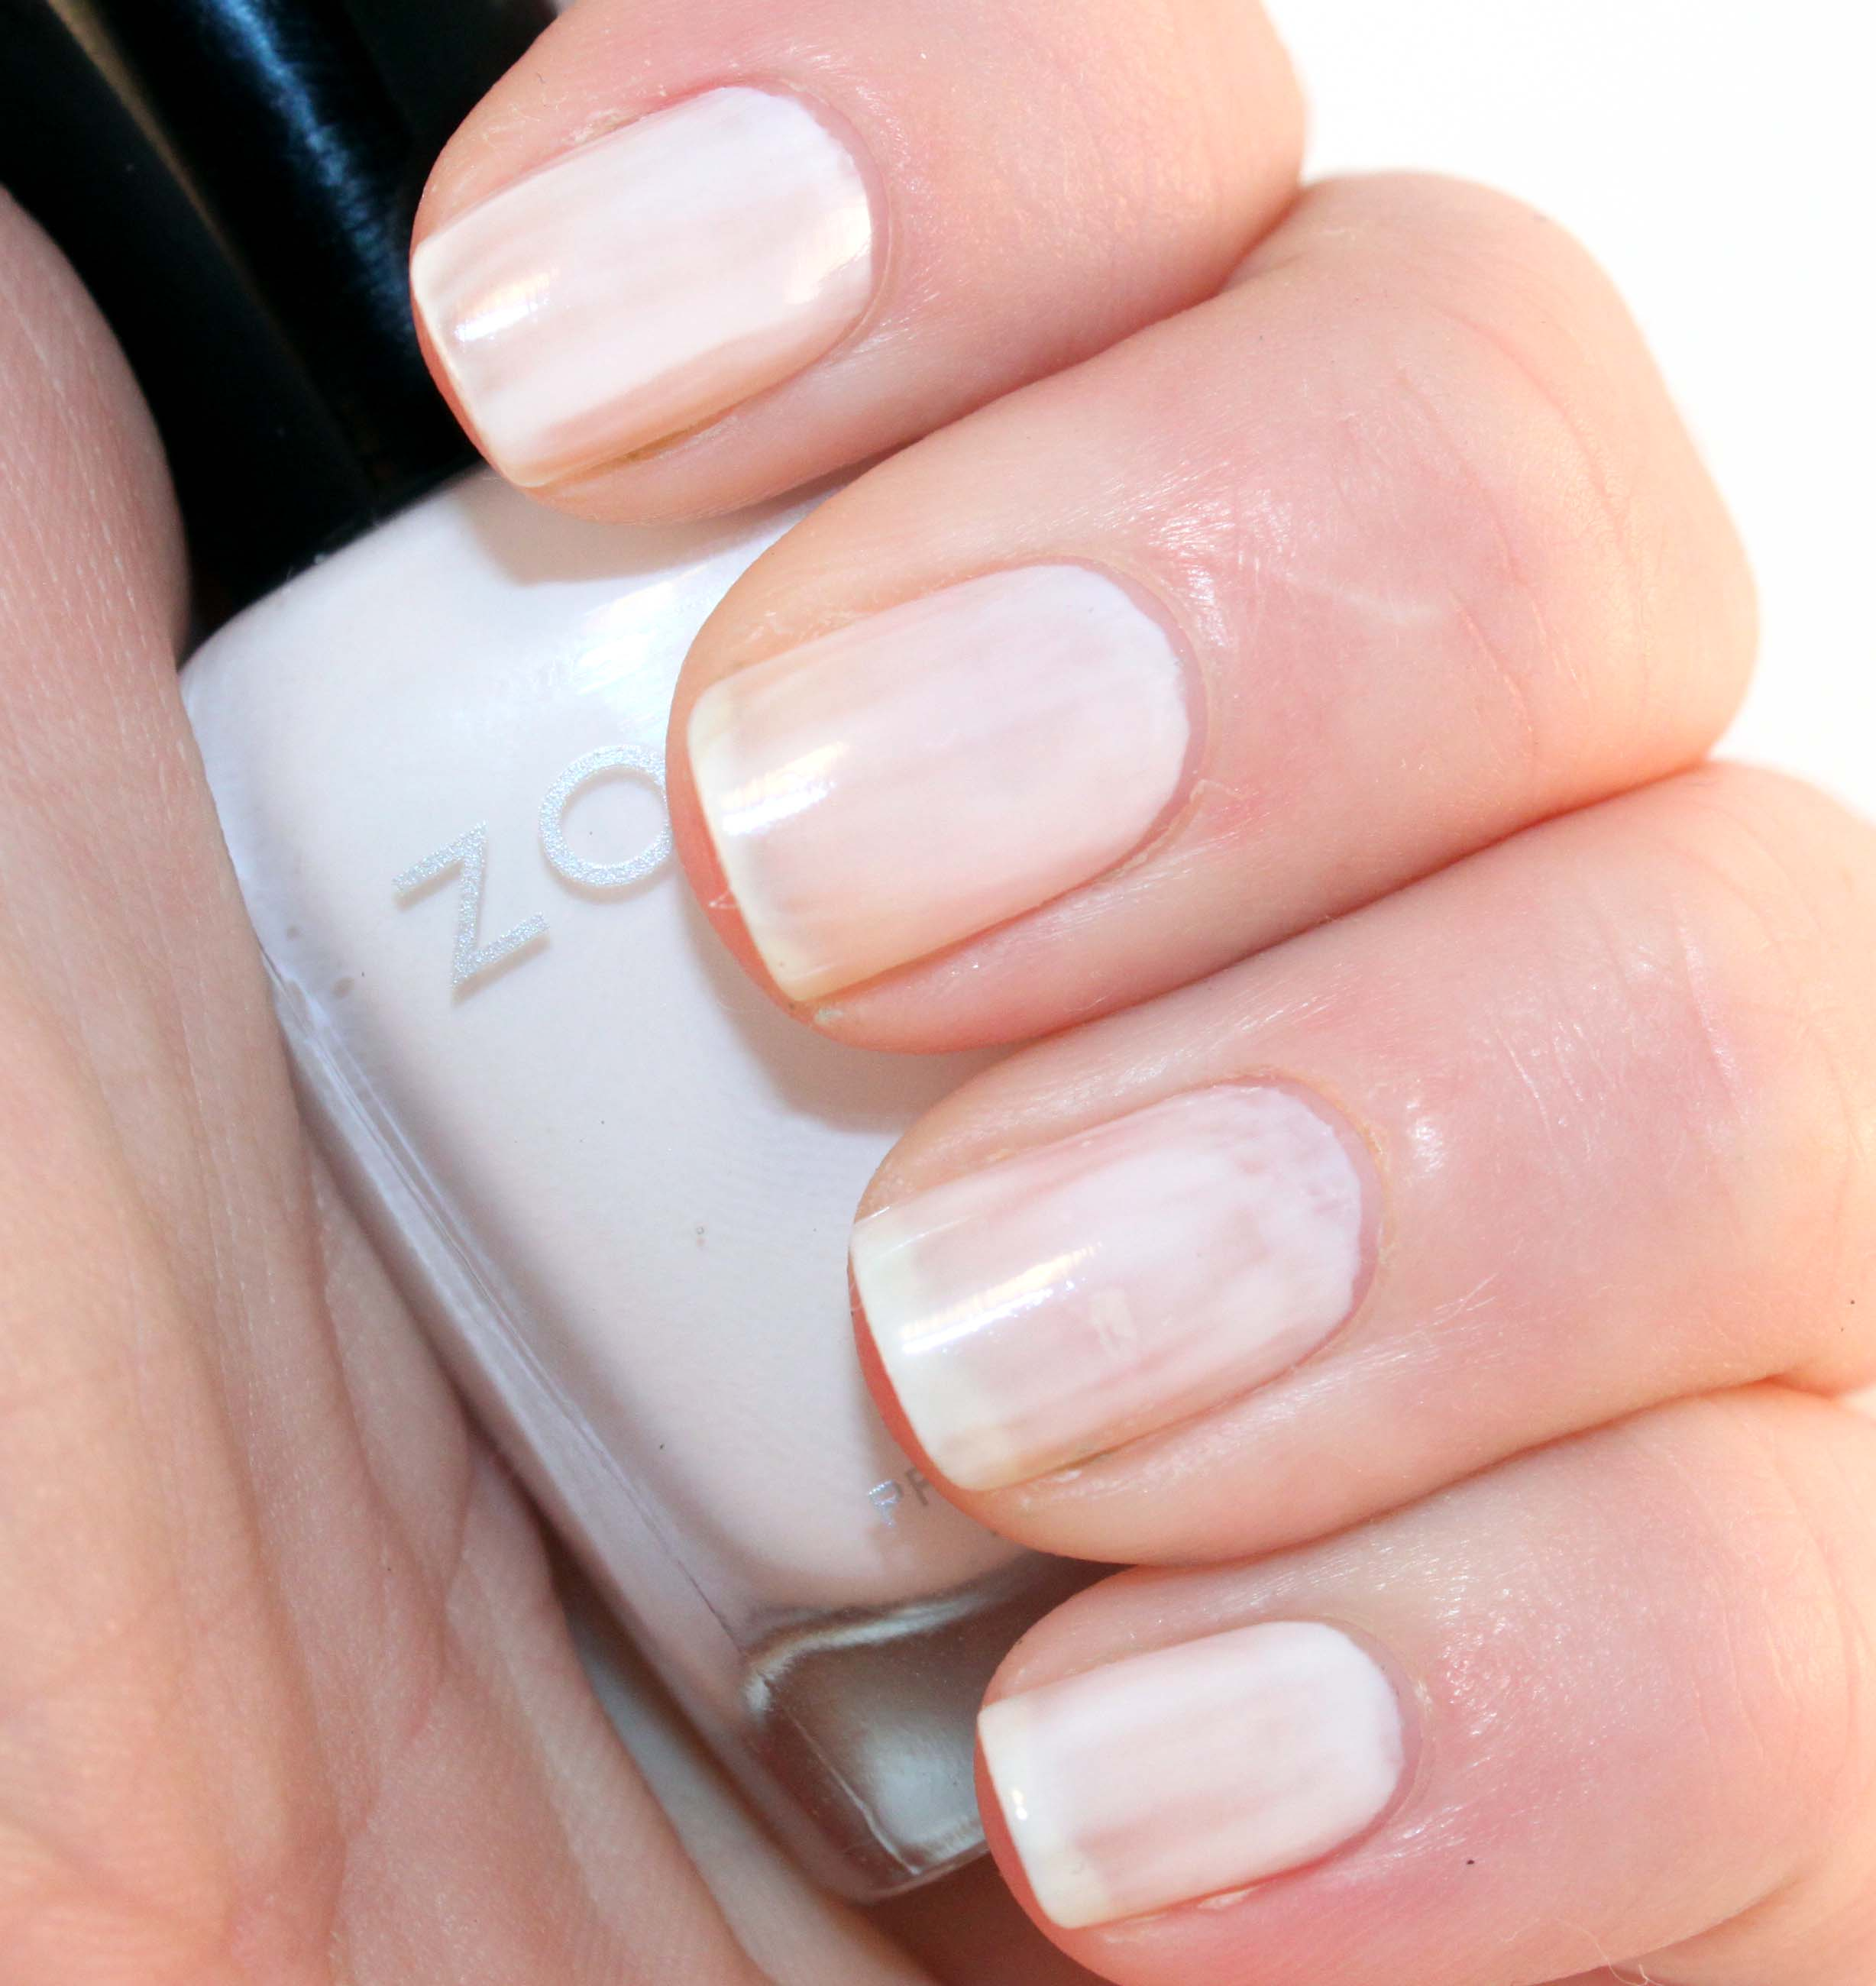 Zoya - Snow White 1 coatZoya Snow White